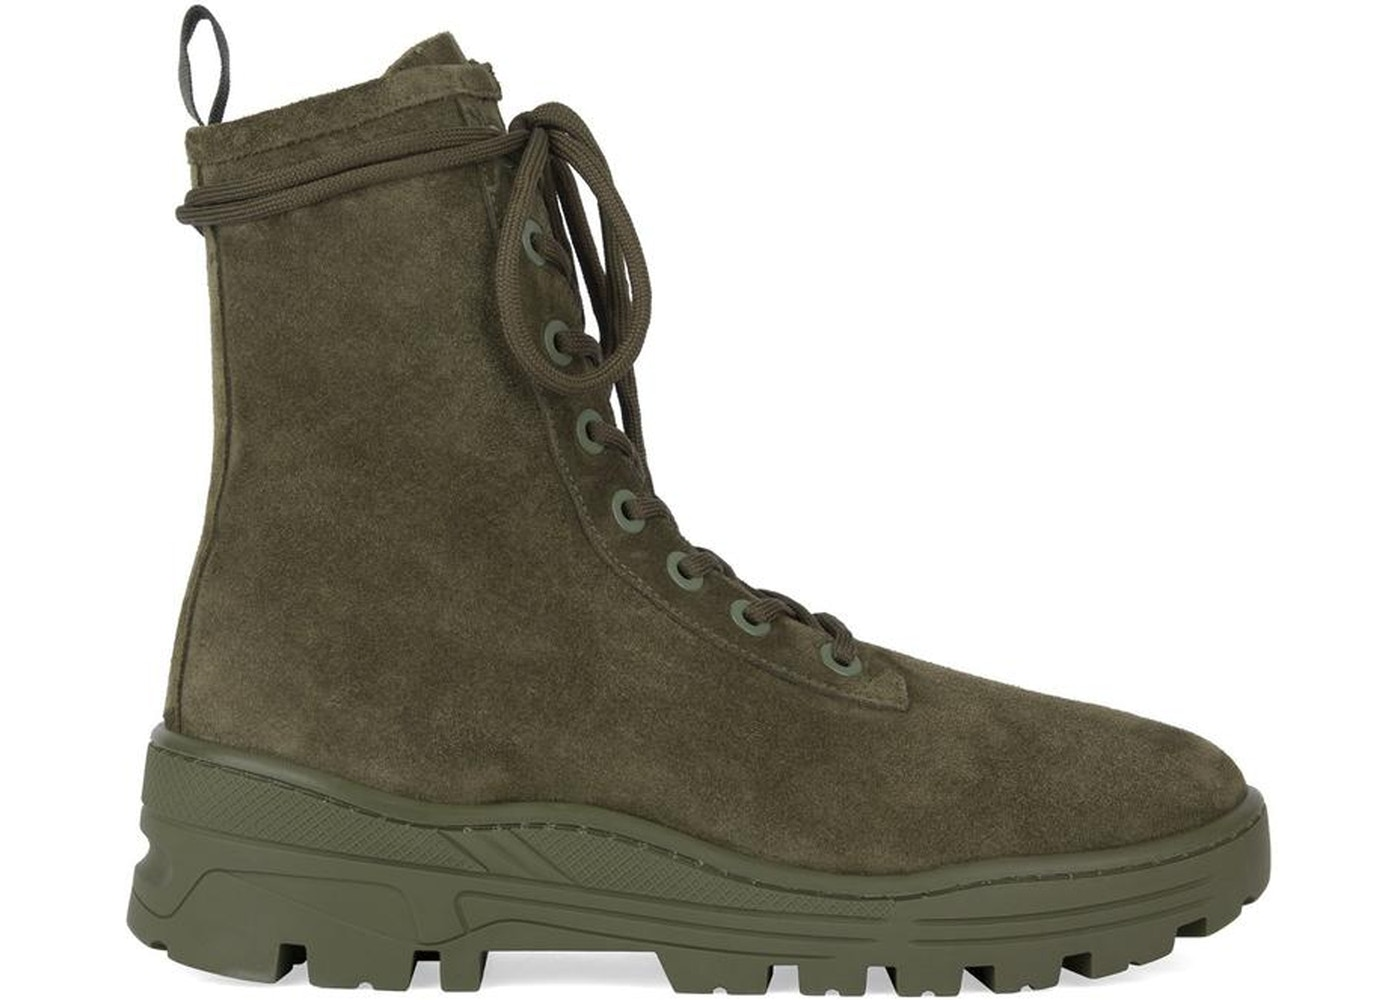 113f1330a4759 Yeezy Thick Suede Combat Boot Military (Season 6) - KM5015.065